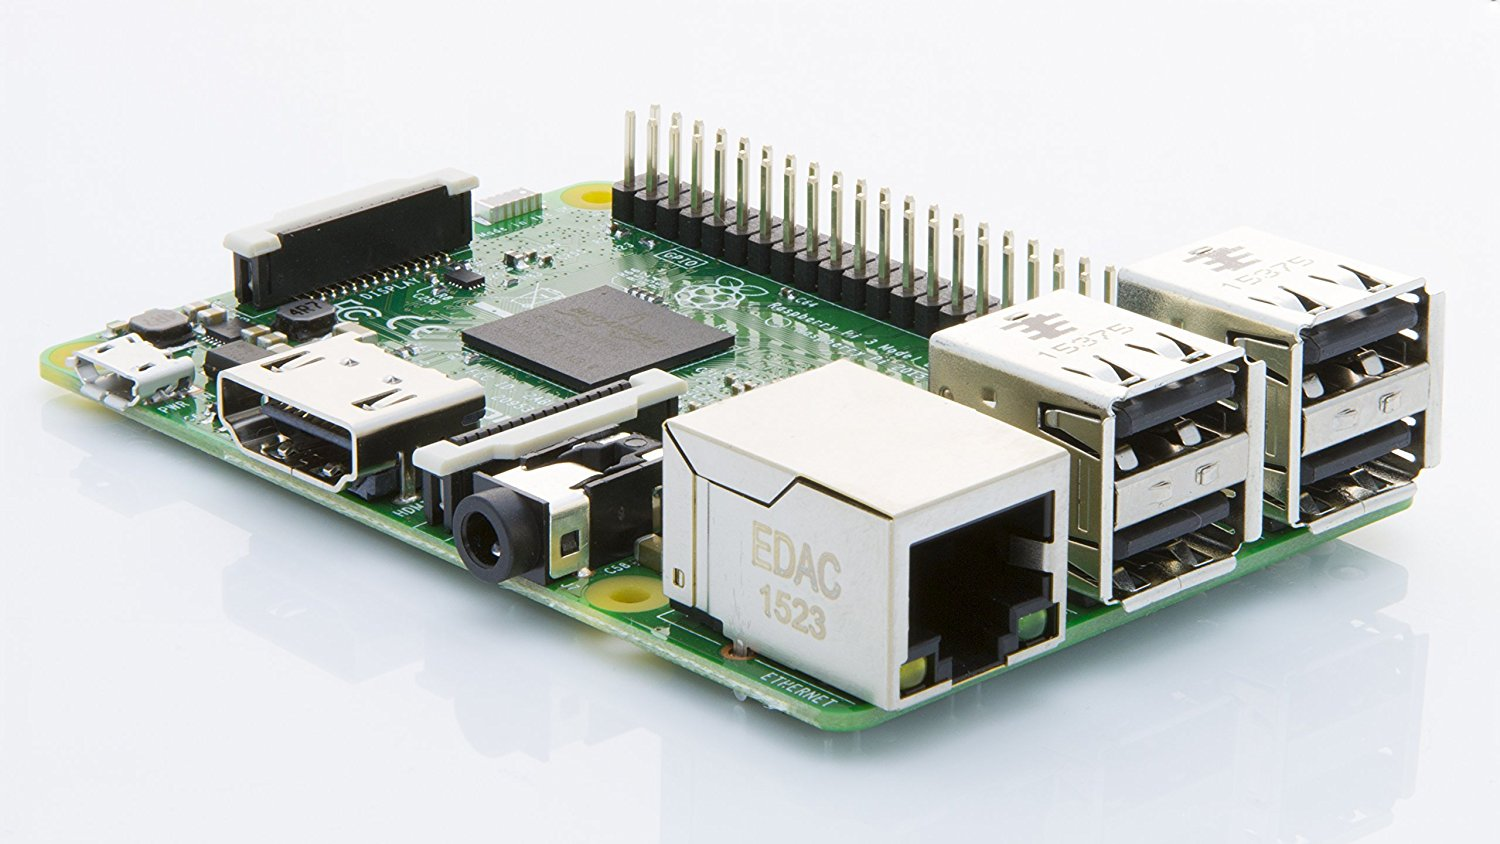 You continue to offer feasible projects with your Raspberry pi